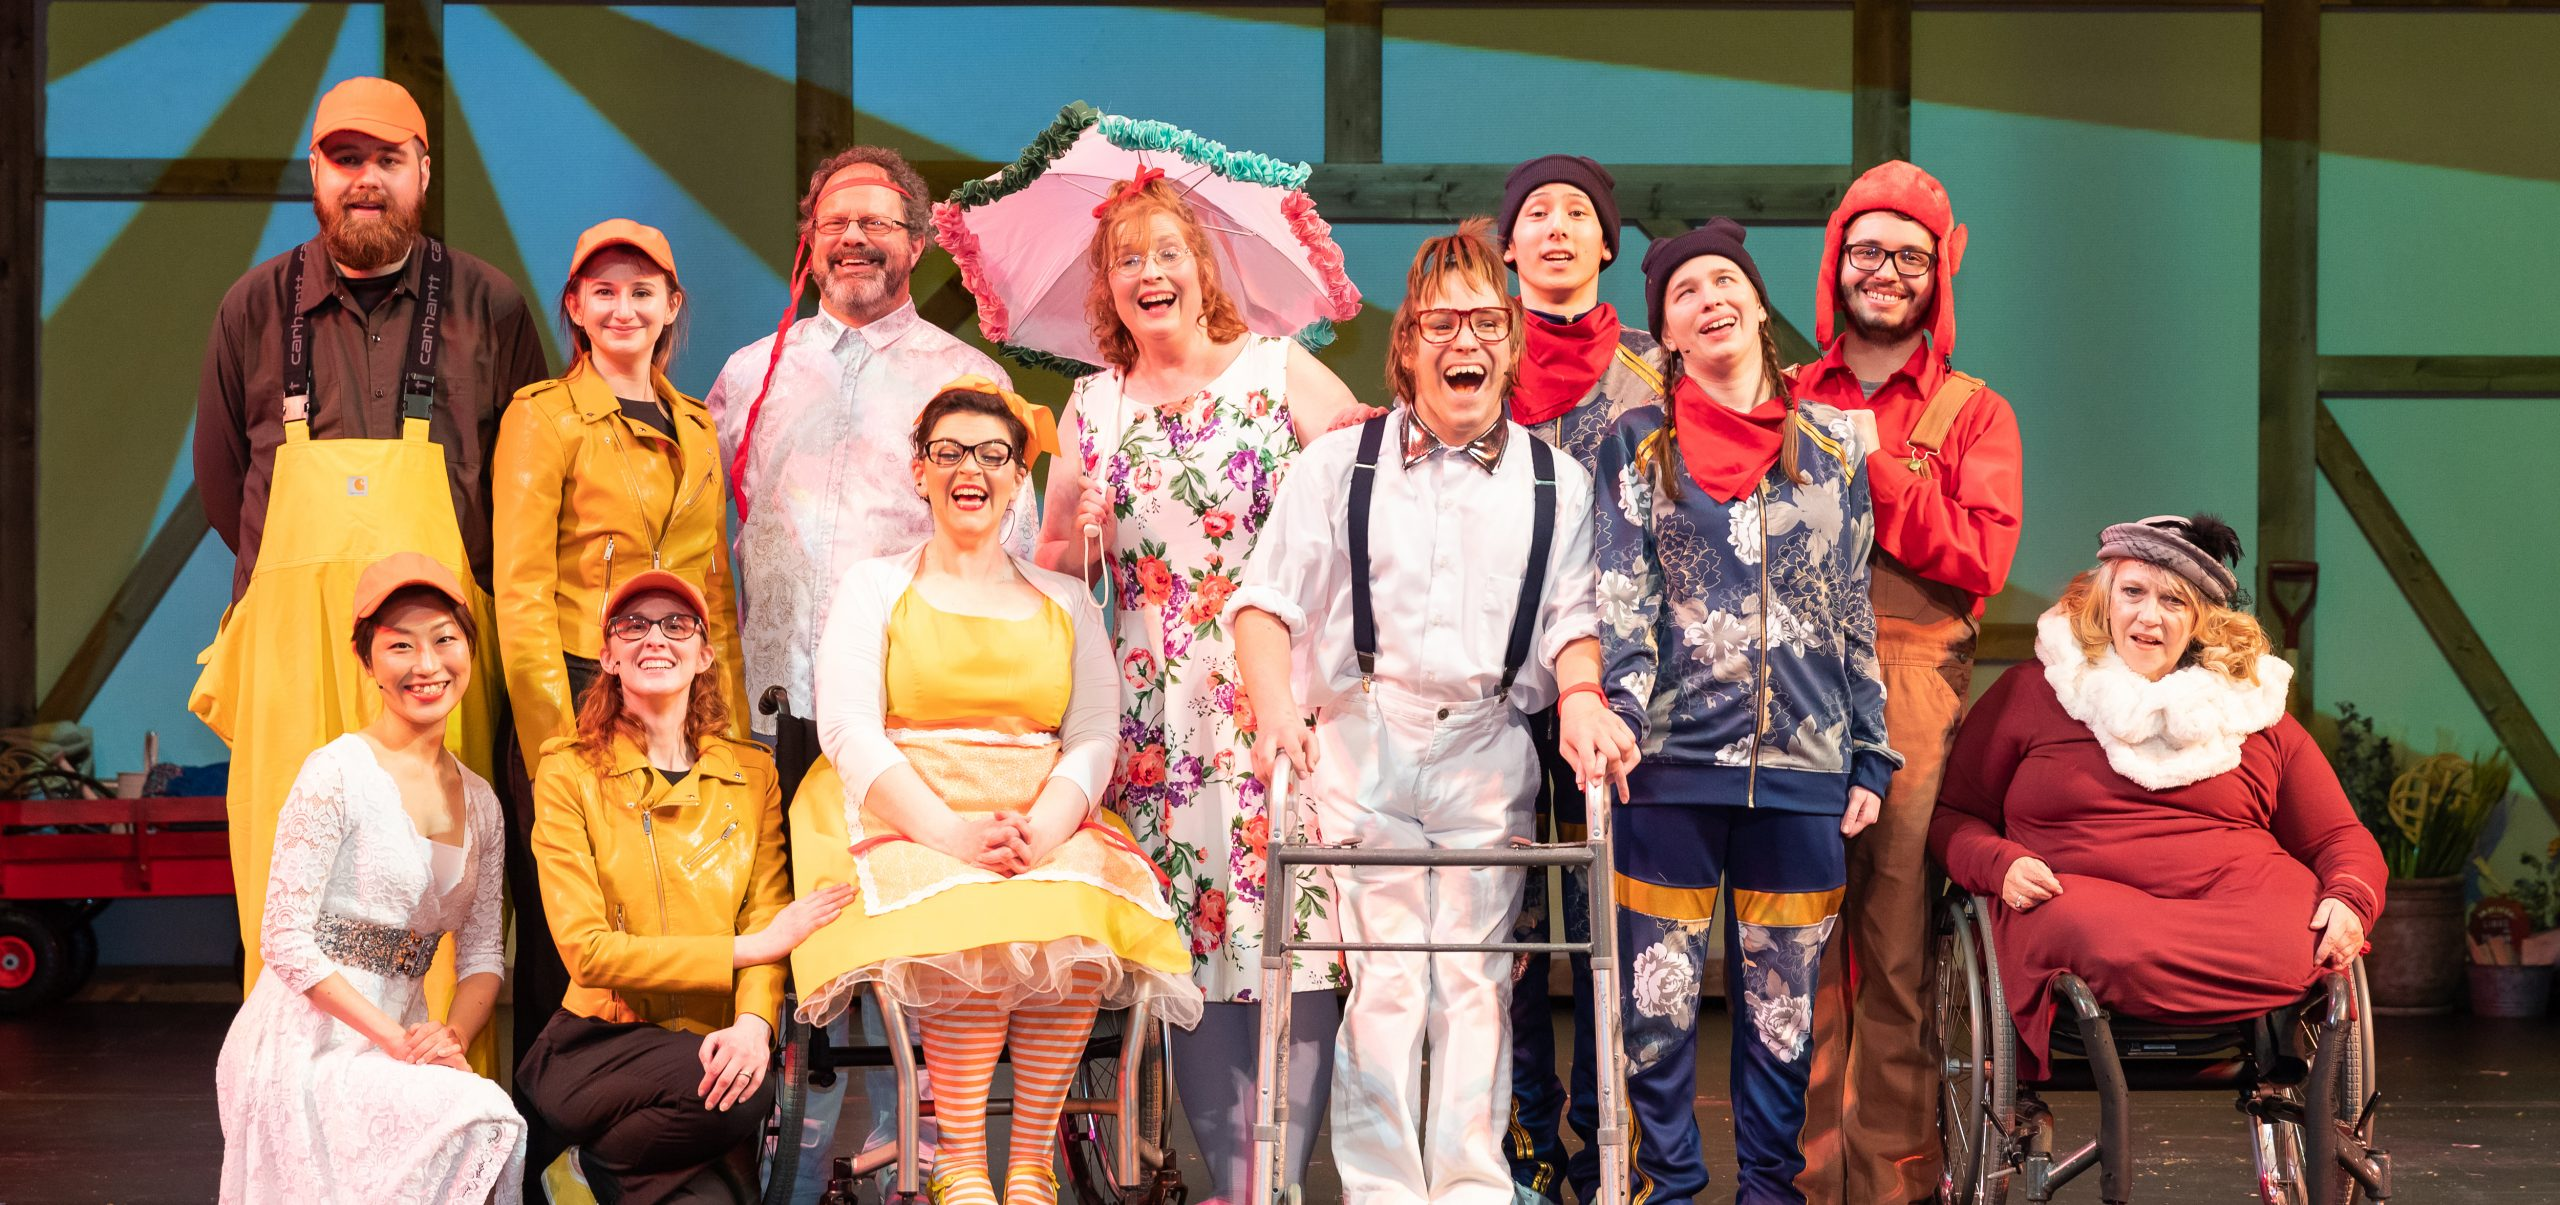 HONK goes to Japan: Language was certainly a barrier that the HONK cast comprising performers from the United States and Japan had to overcome / Credit: Ryohei Tomita